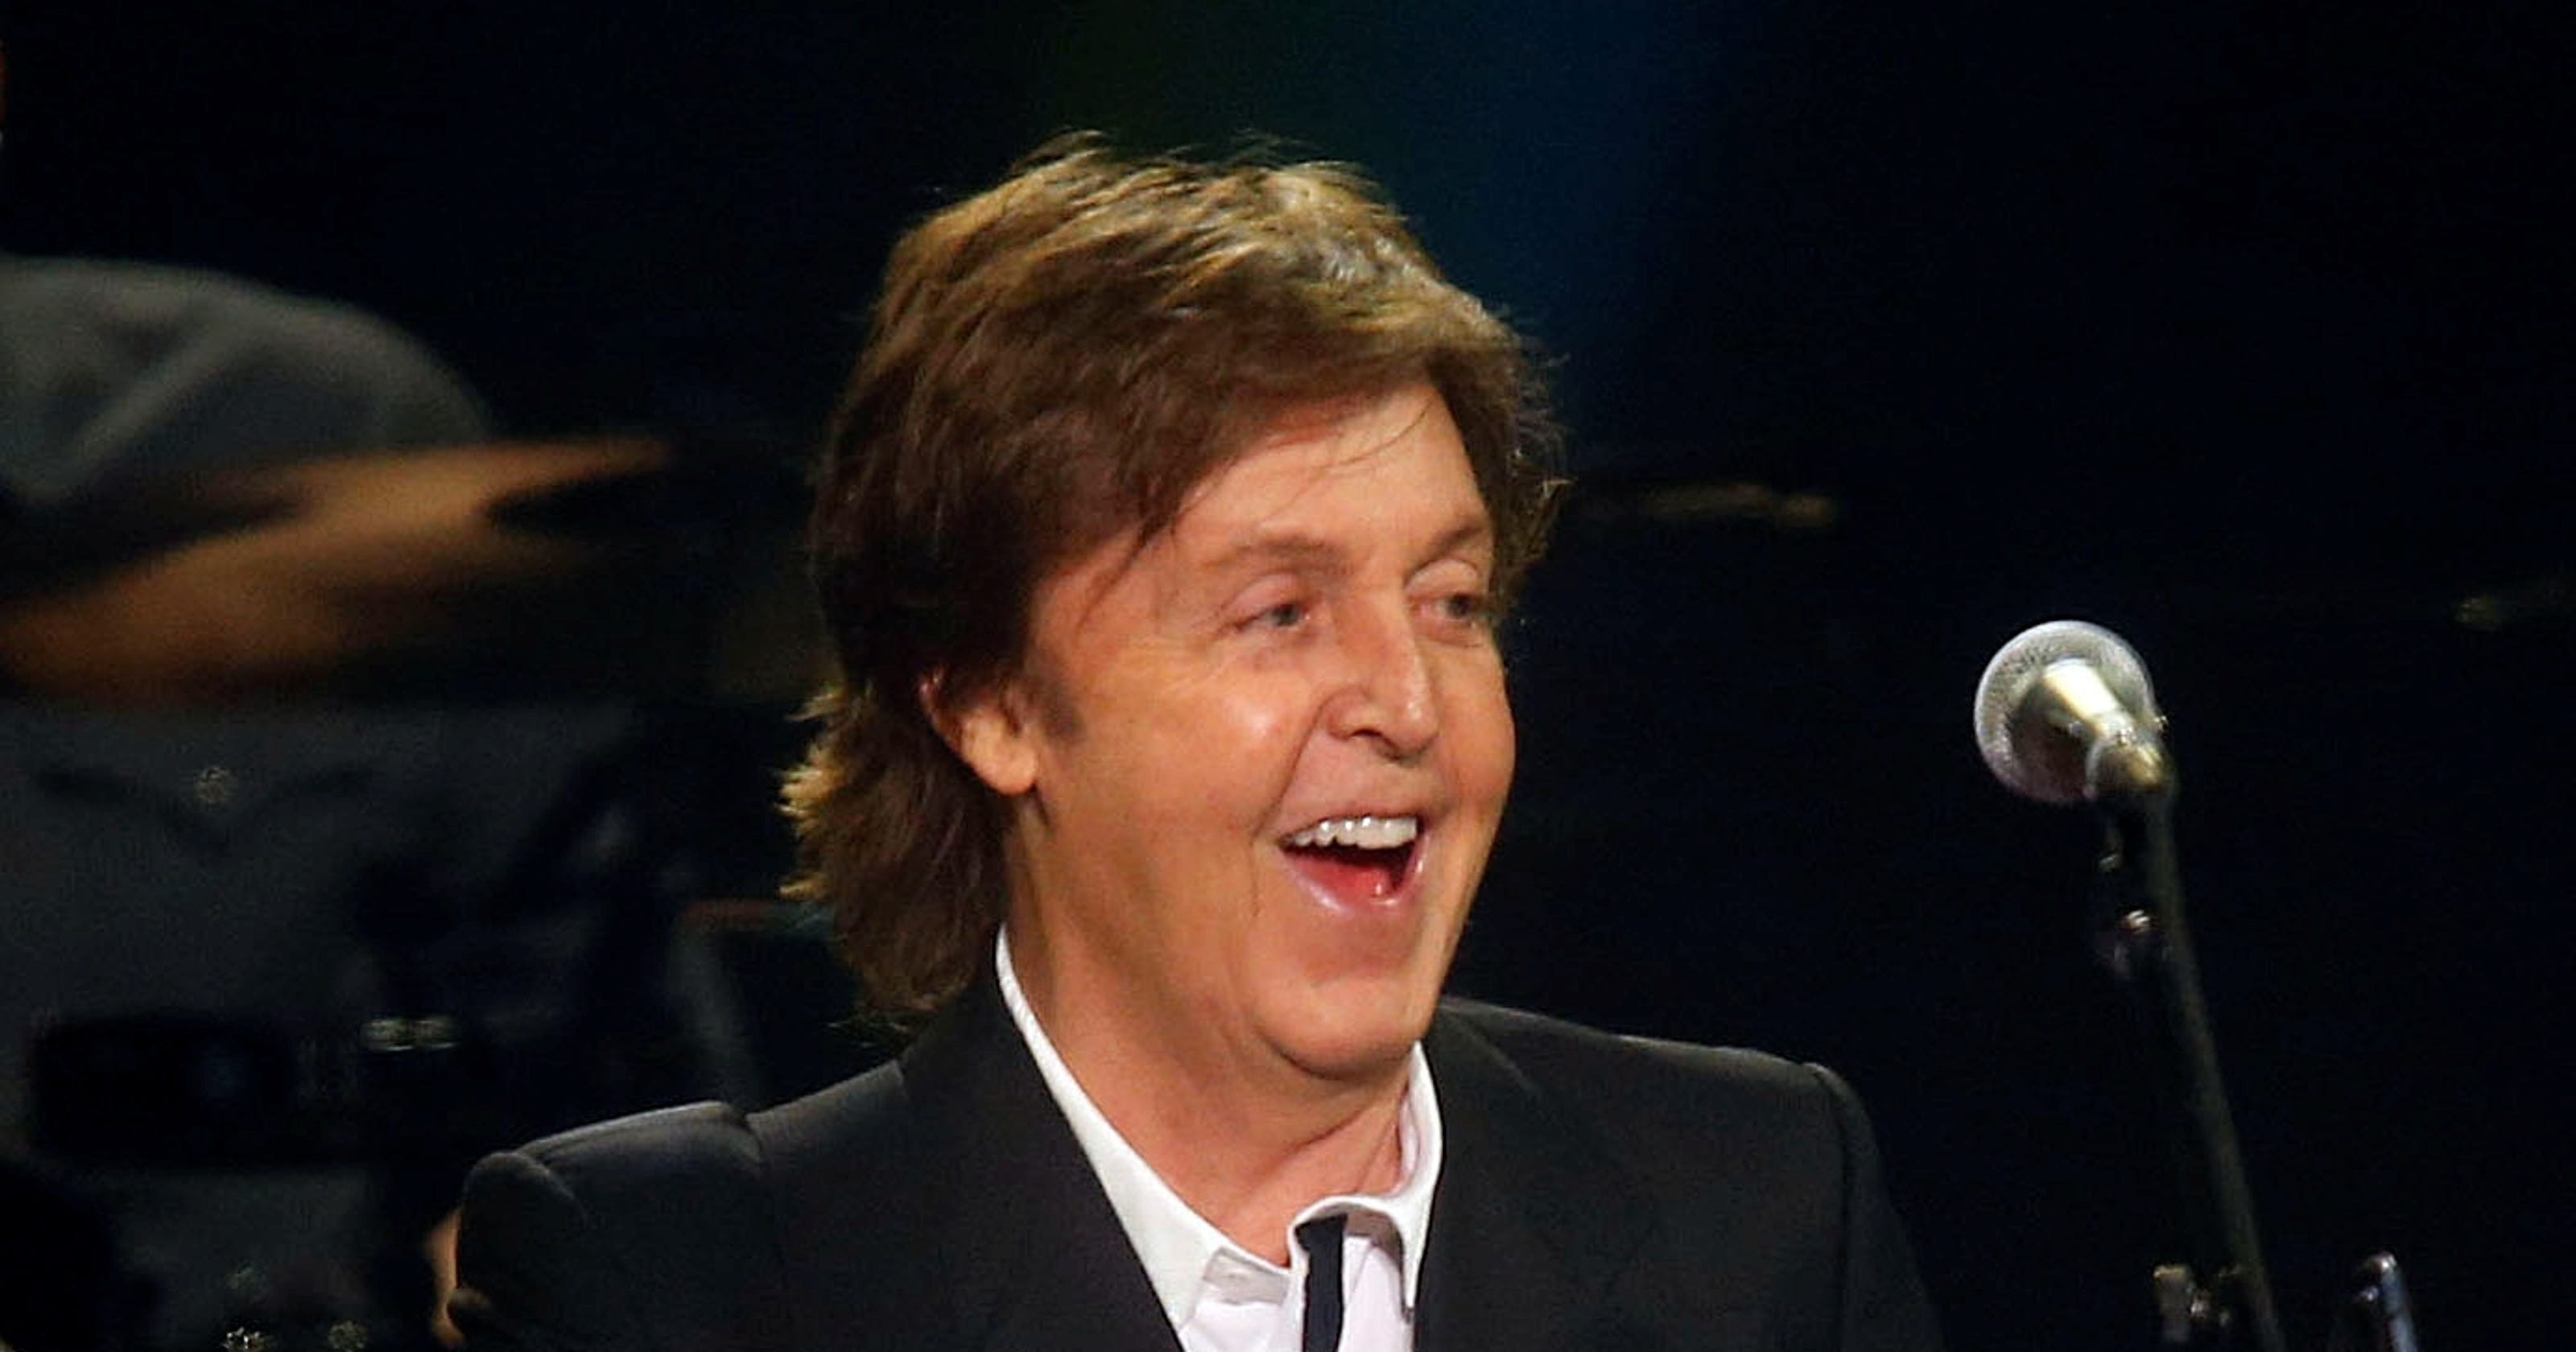 IHeartRadio Poll Paul McCartney Is Pops Coolest Dad